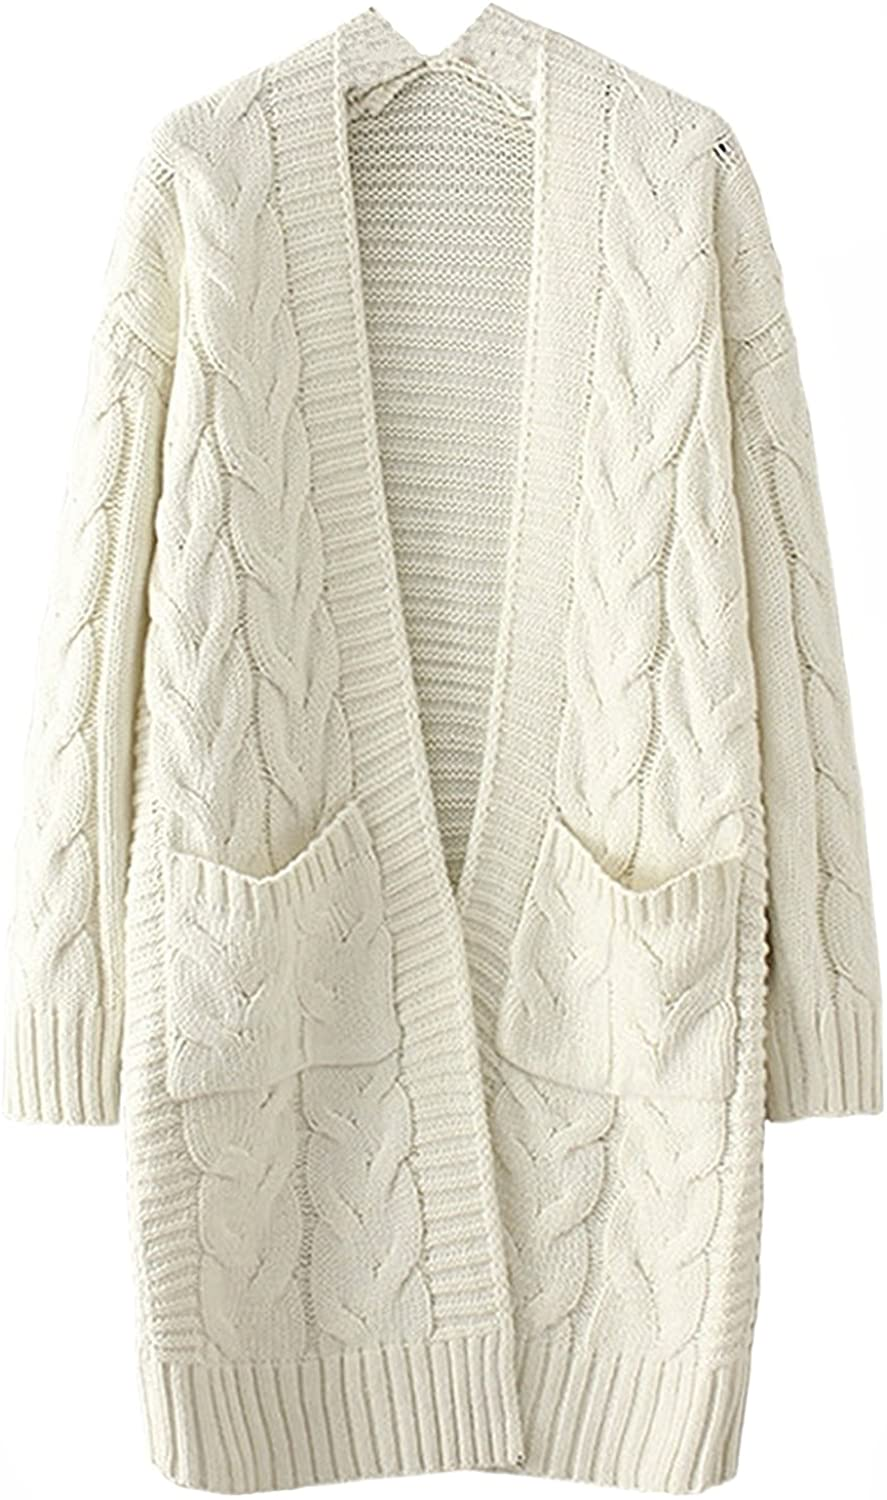 Honeystore Women's Long Chunky Cable Knit Cardigan Coat Open Front Loose Sweater